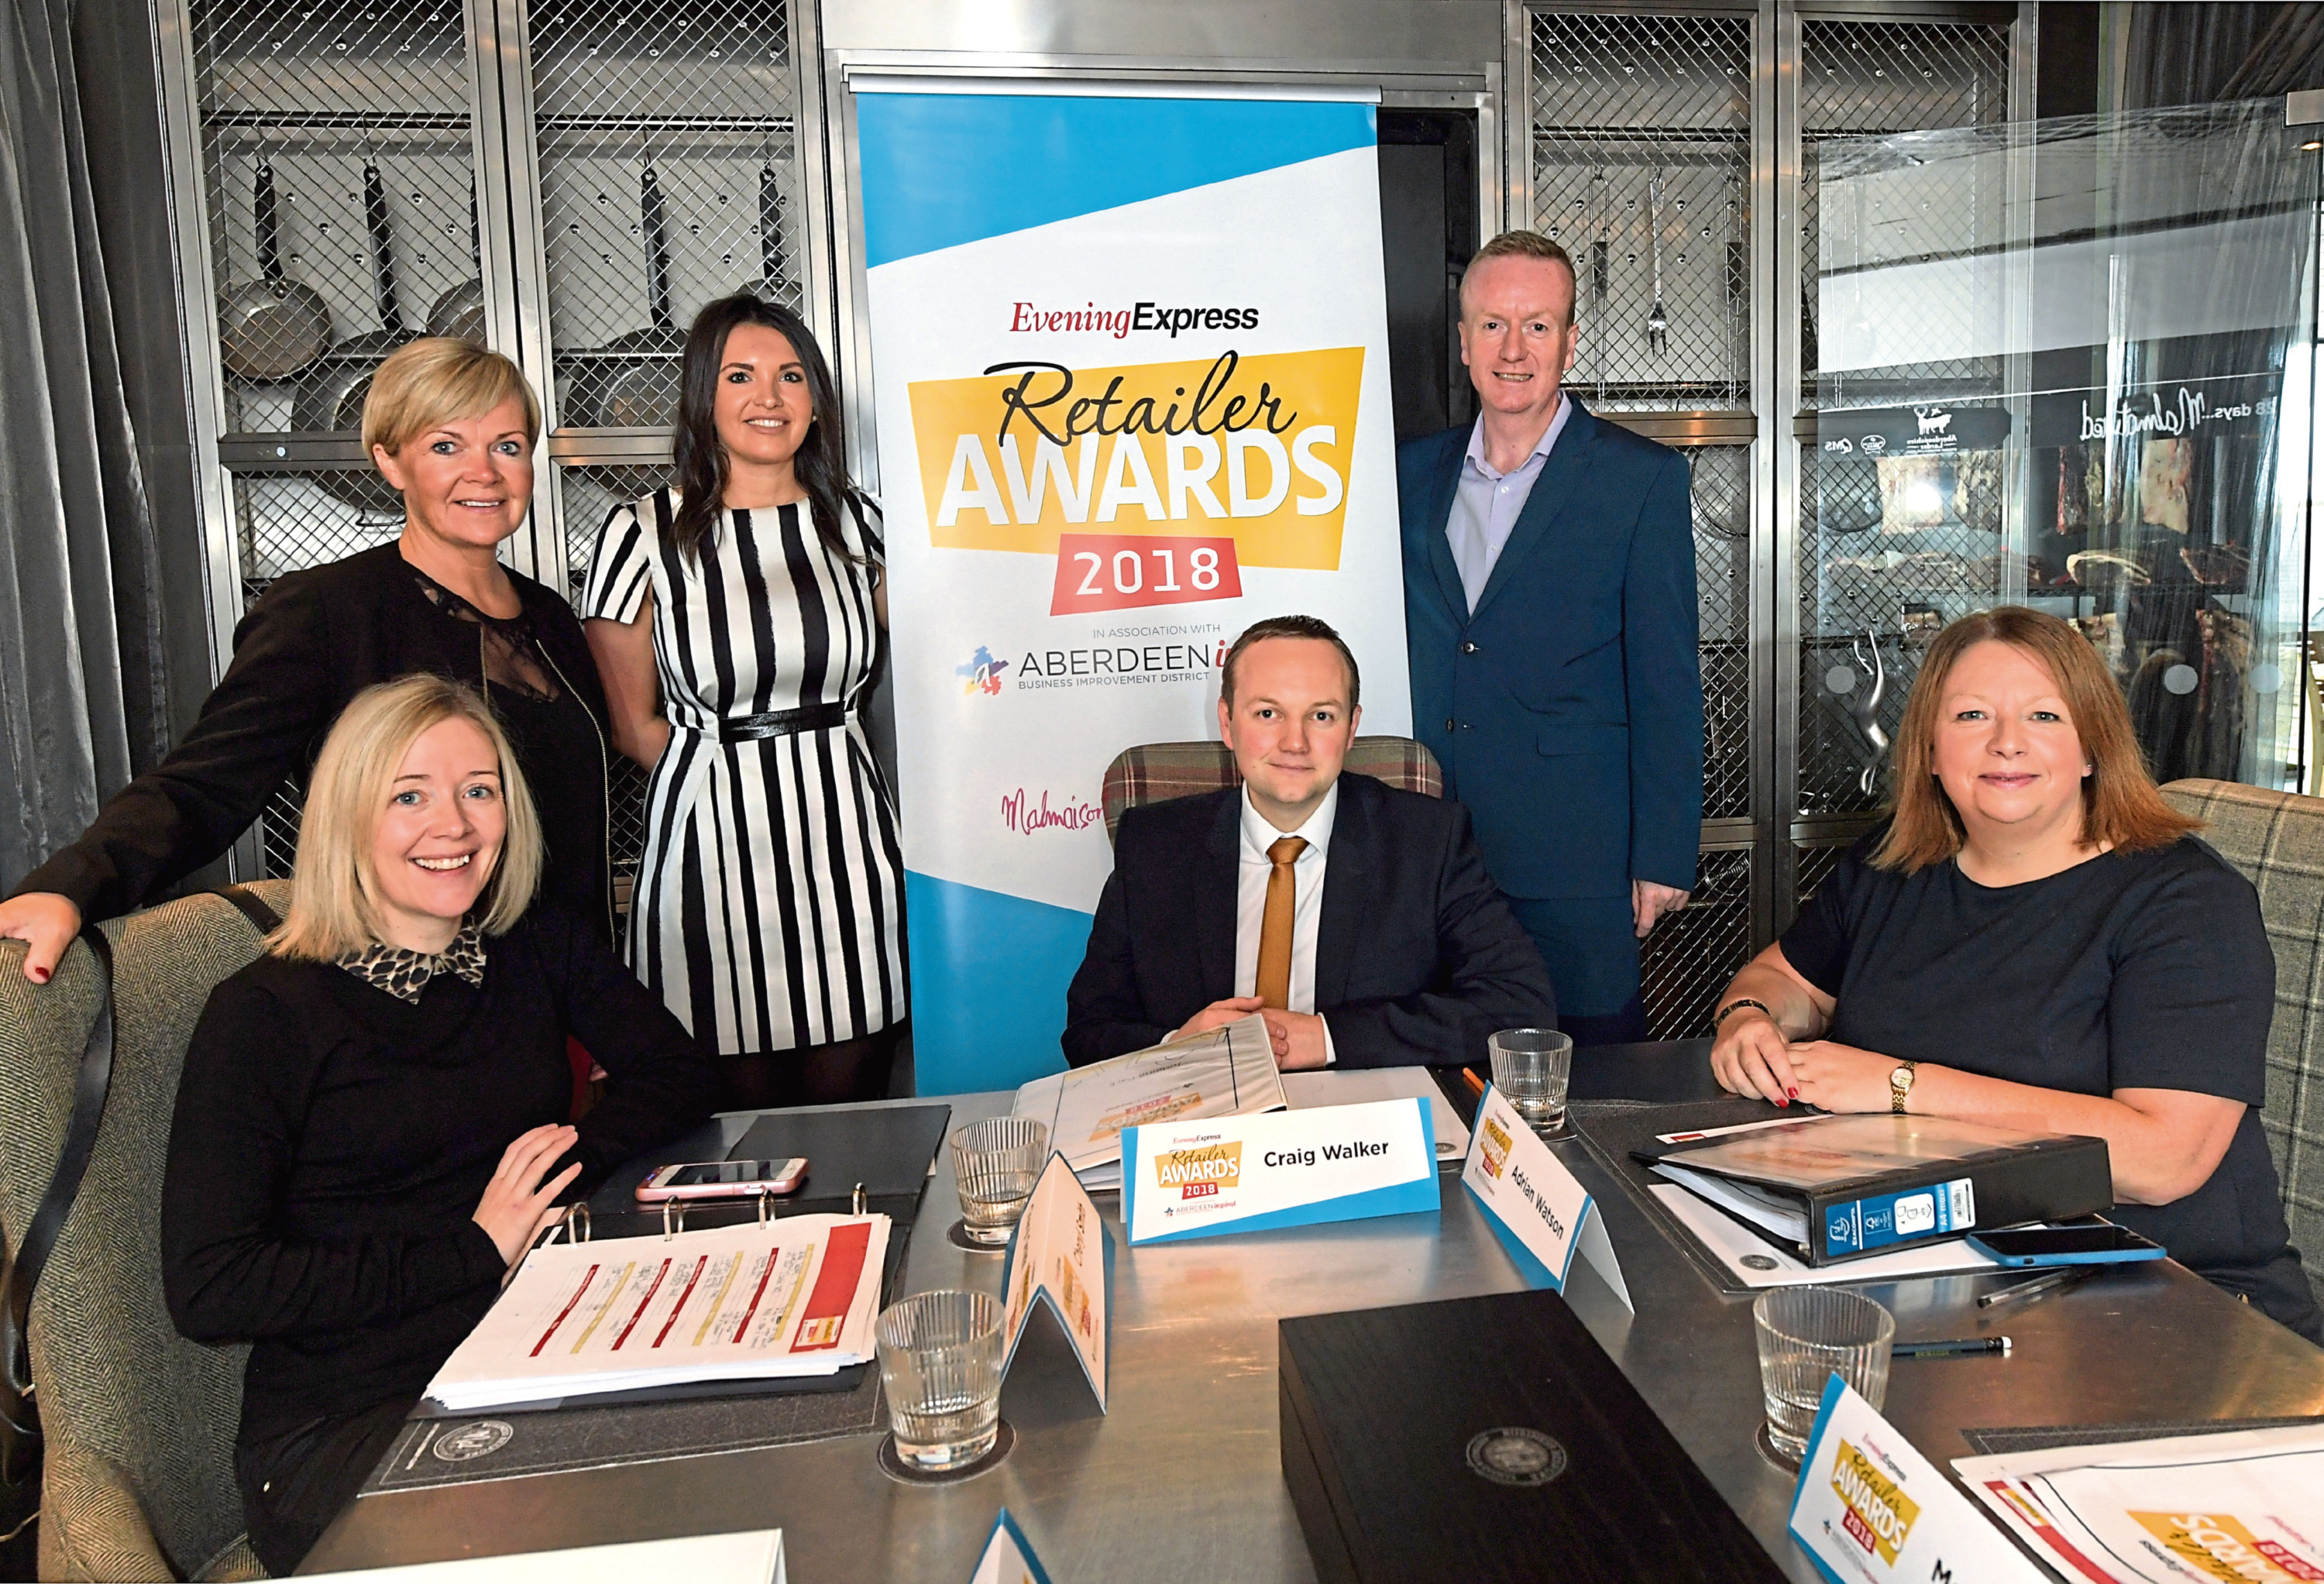 The Evening Express Retailer Awards judging panel